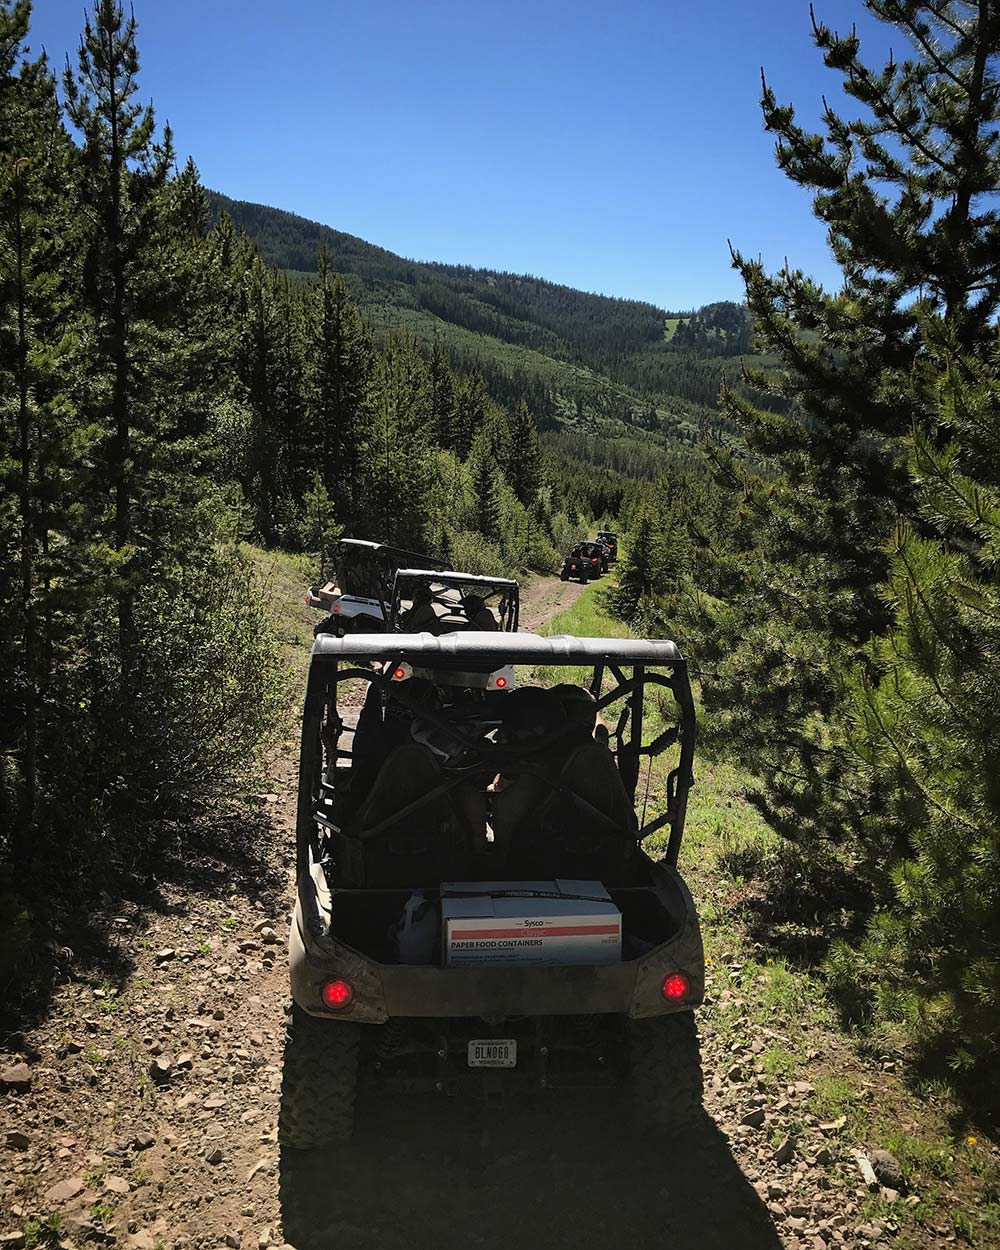 side by side trail riding in montana through forest